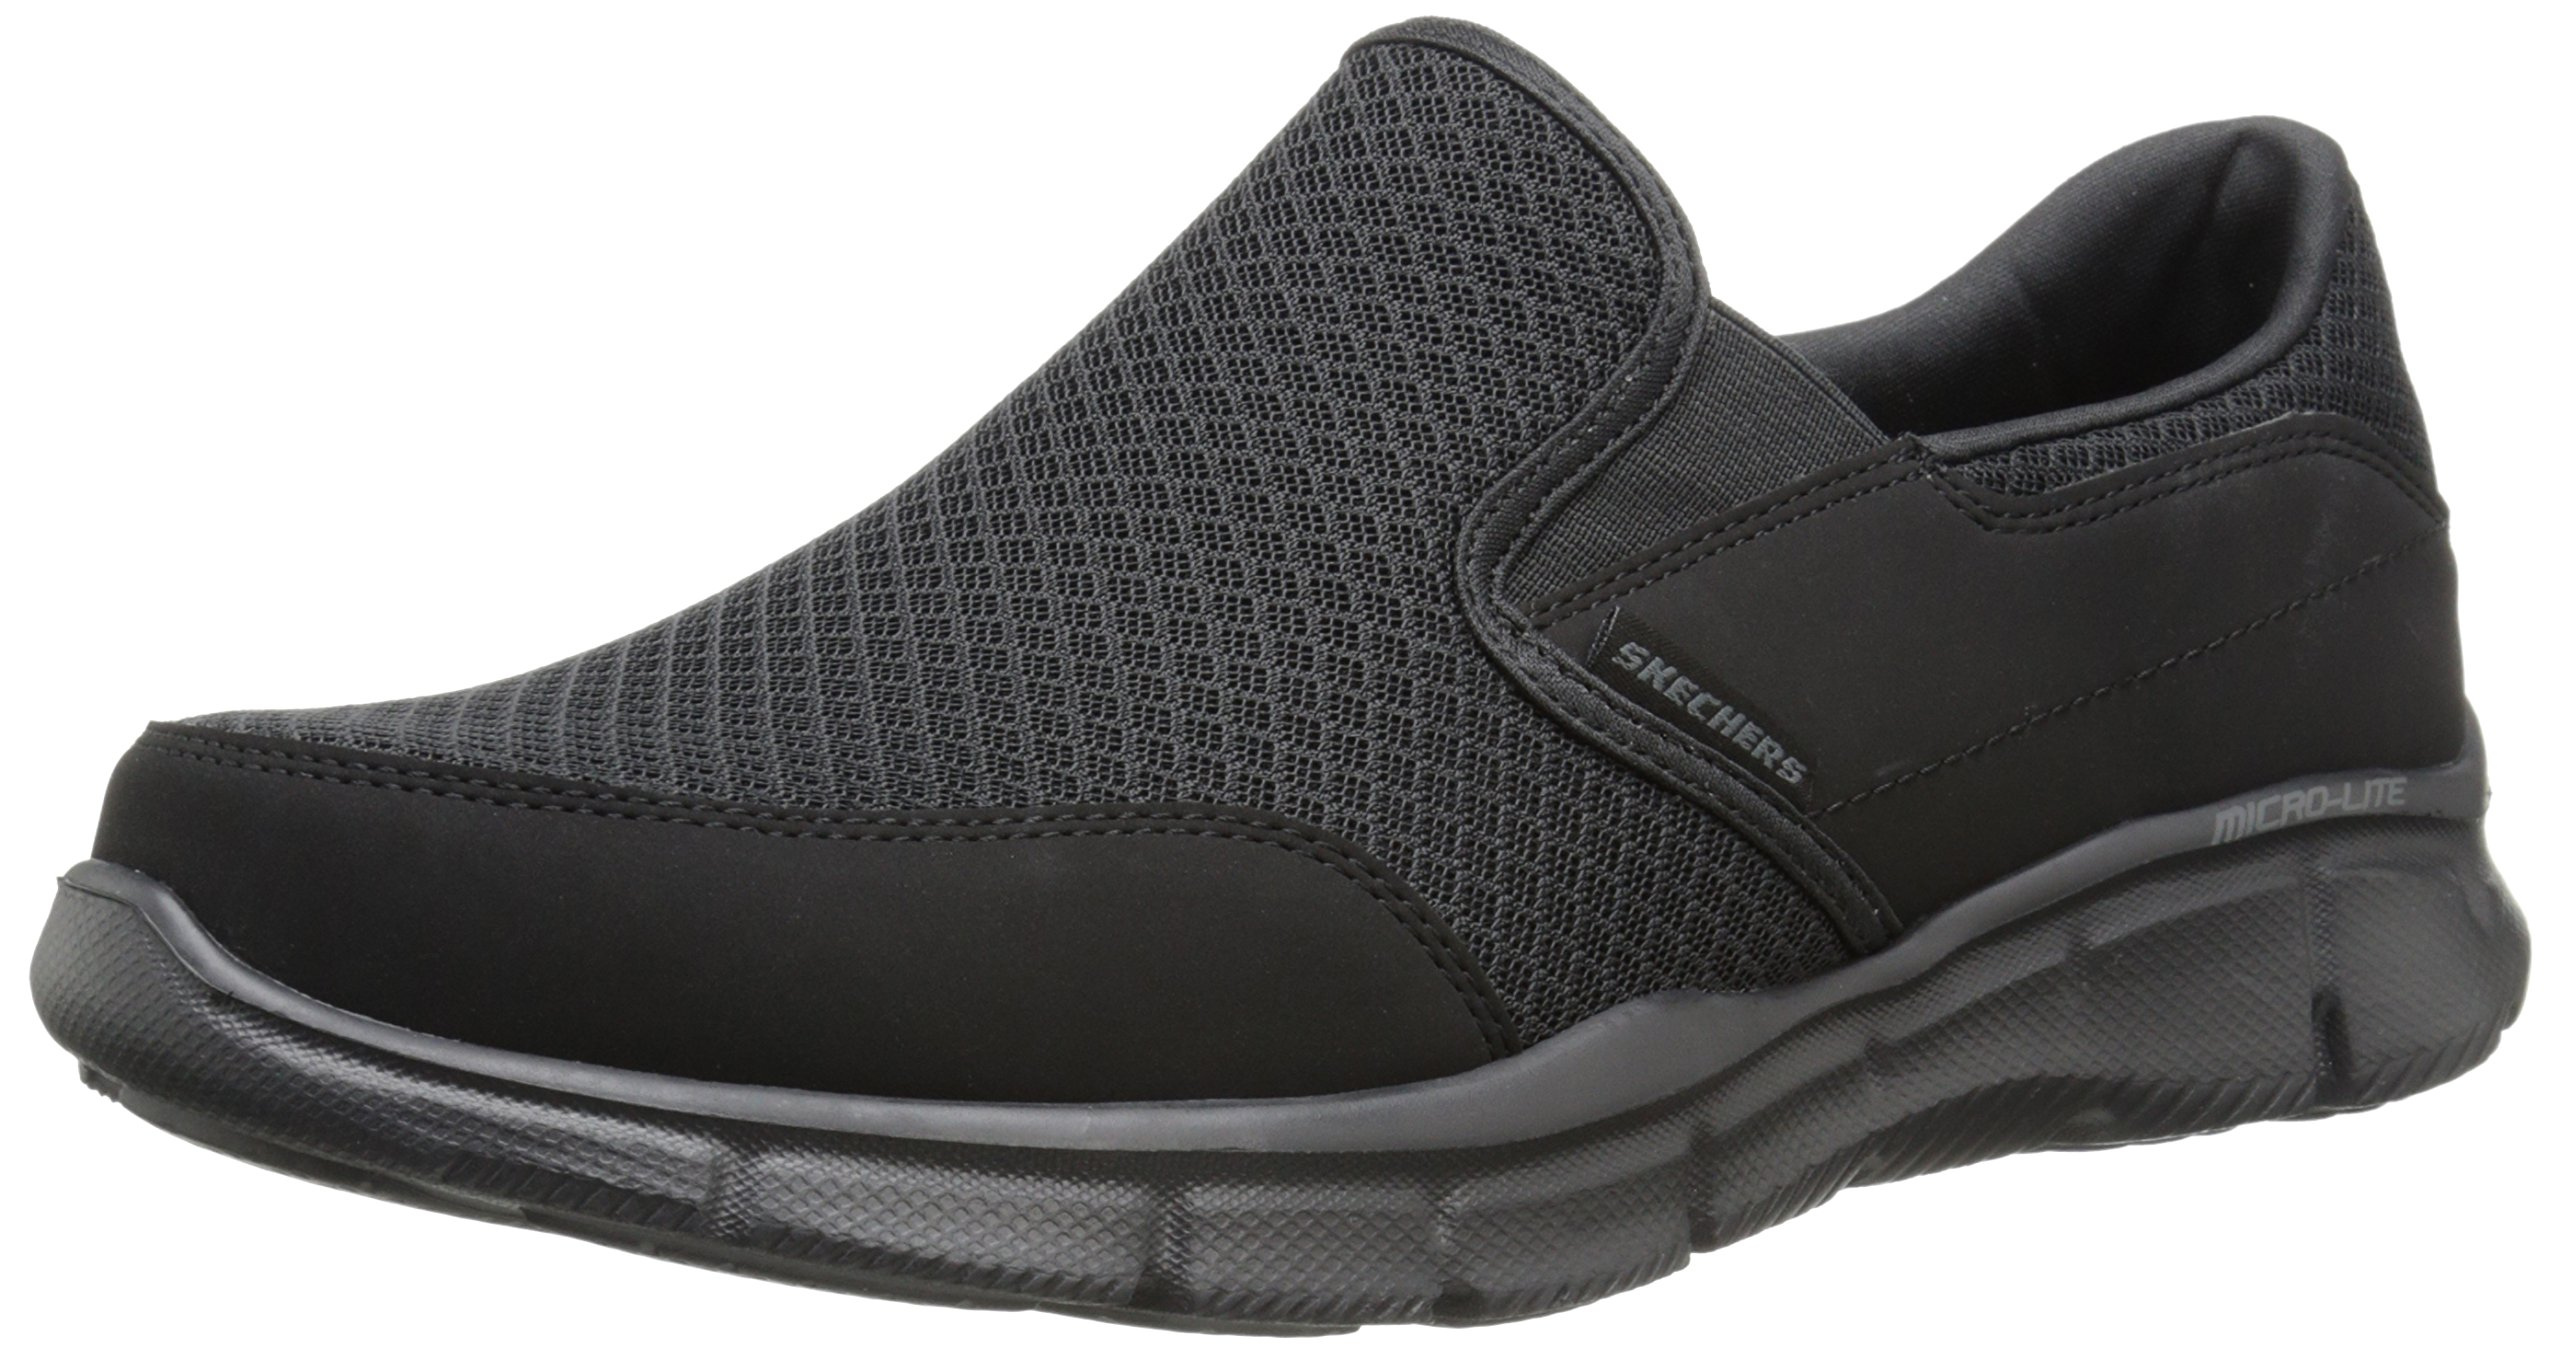 Skechers Sport Men's Equalizer Persistent Slip-On Sneaker, Black, 13 XW US by Skechers